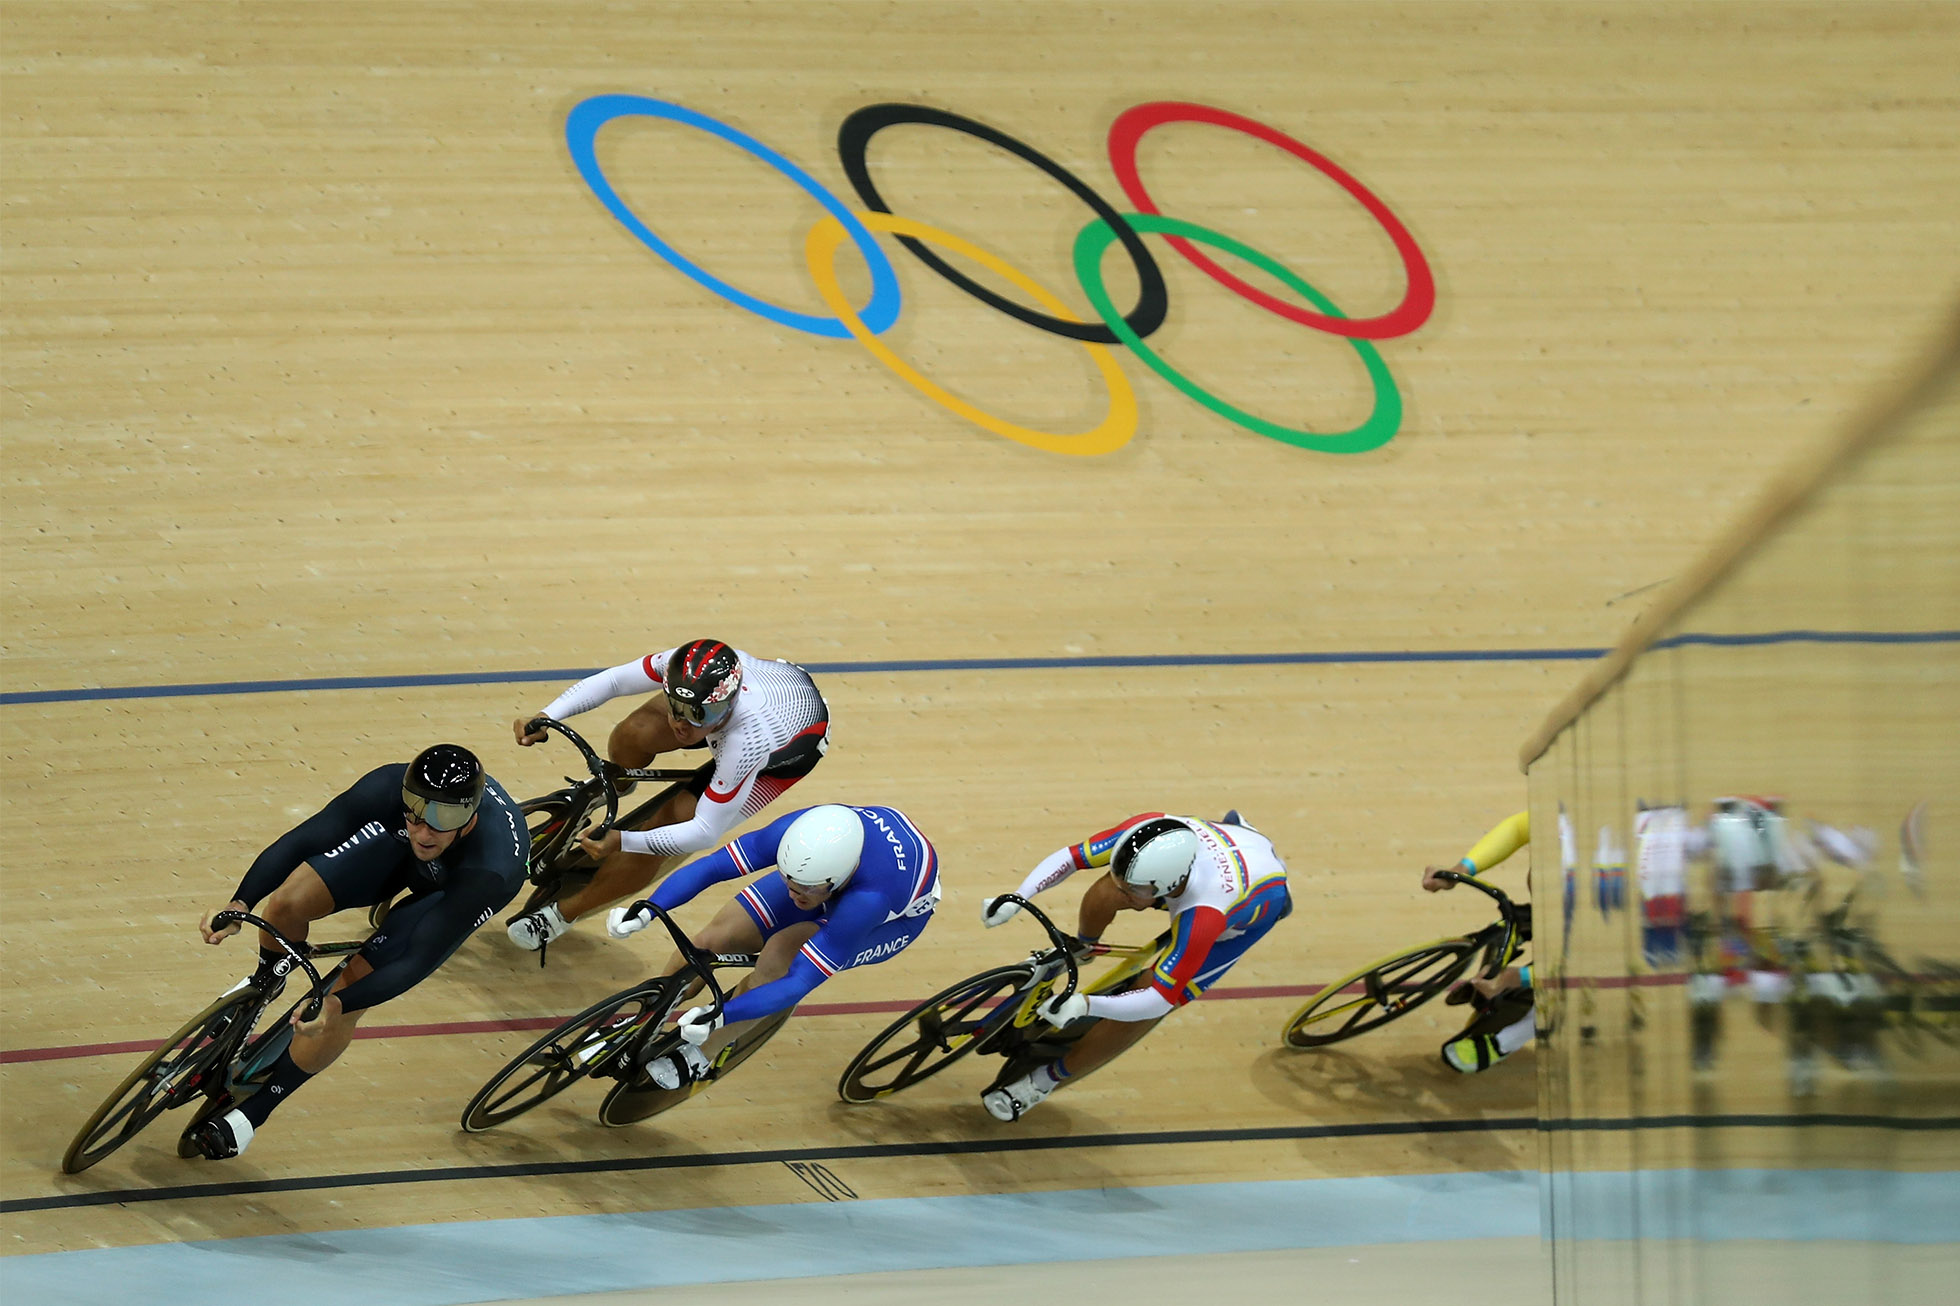 RIO DE JANEIRO, BRAZIL - AUGUST 16: Edward Dawkins of New Zealand, Francois Pervis of France, Yuta Wakimoto of Japan, Angel Pulgar of Venezuela and Patrick Constable of Australia compete during the Men's Keirin First Rou nd Repechages - Heat 3 on Day 11 of the Rio 2016 Olympic Games at the Rio Olympic Velodrome on August 16, 2016 in Rio de Janeiro, Brazil. (Photo by Bryn Lennon/Getty Images)